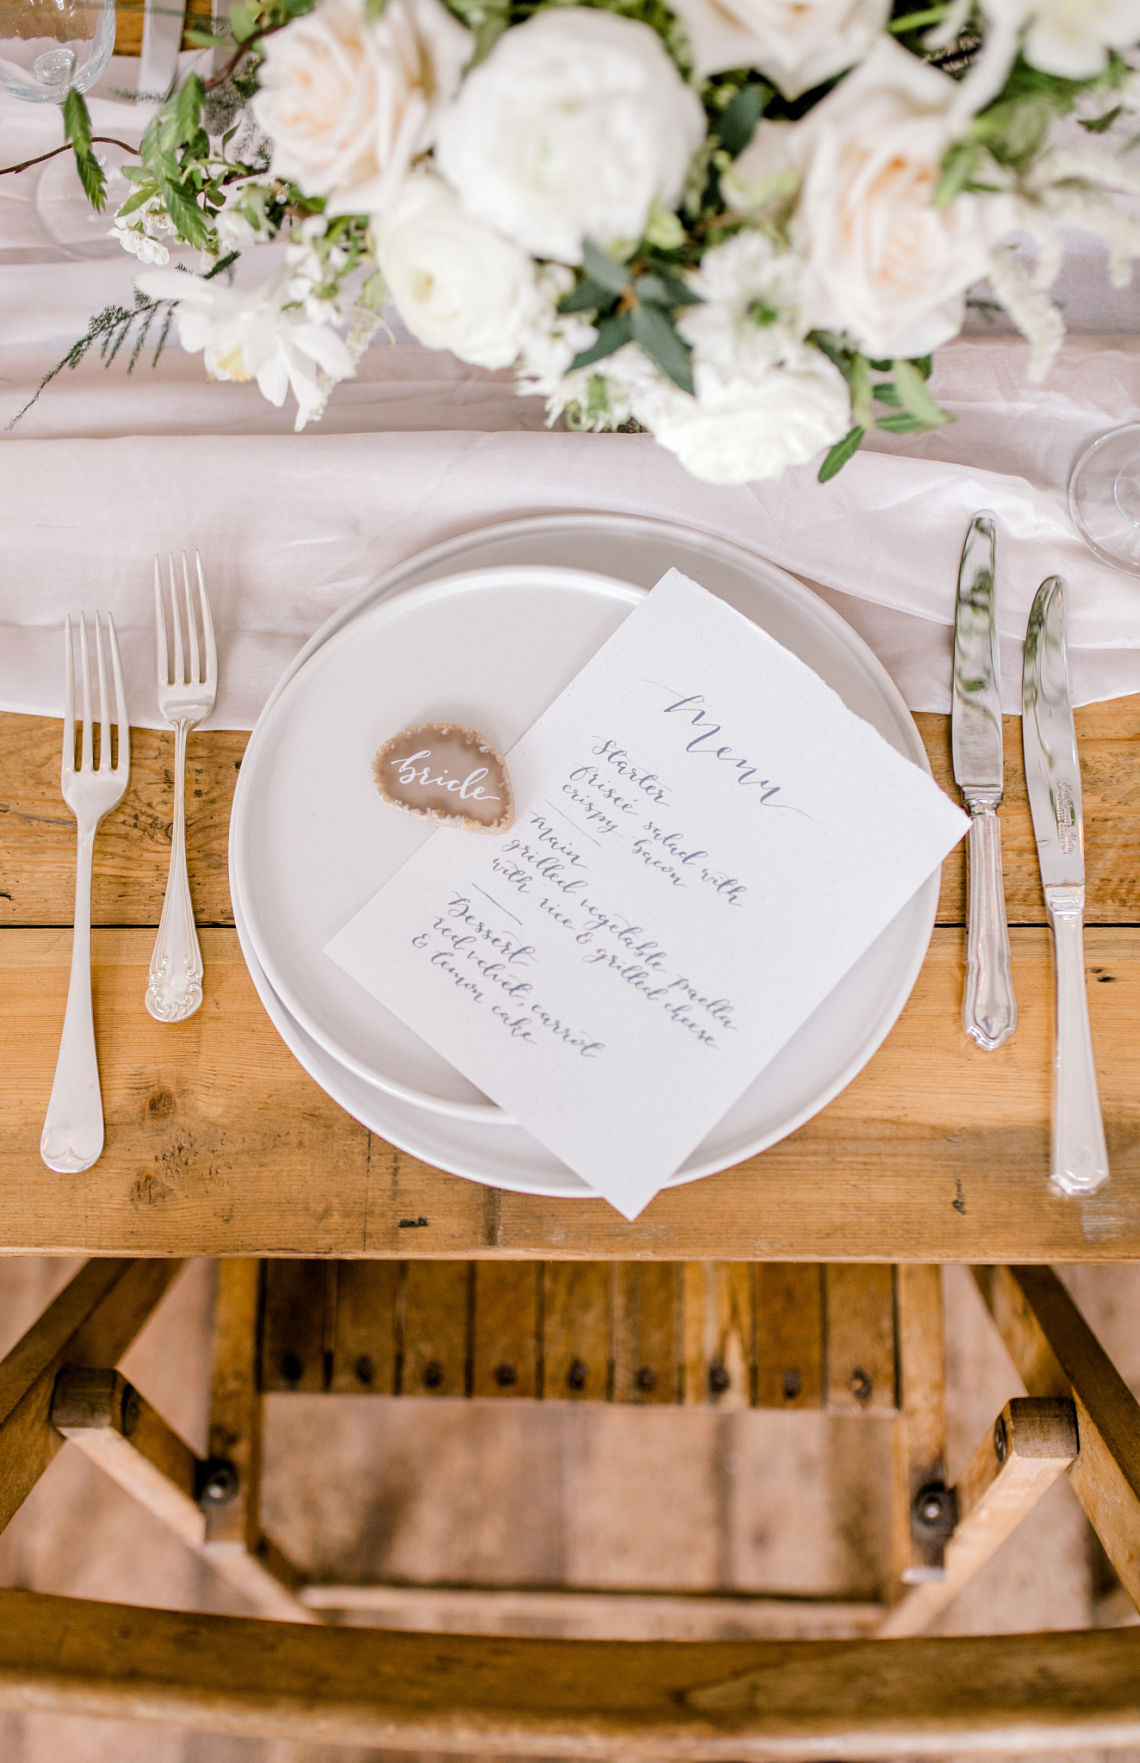 Fine art wedding - place setting with neutral colours - Essex wedding planner